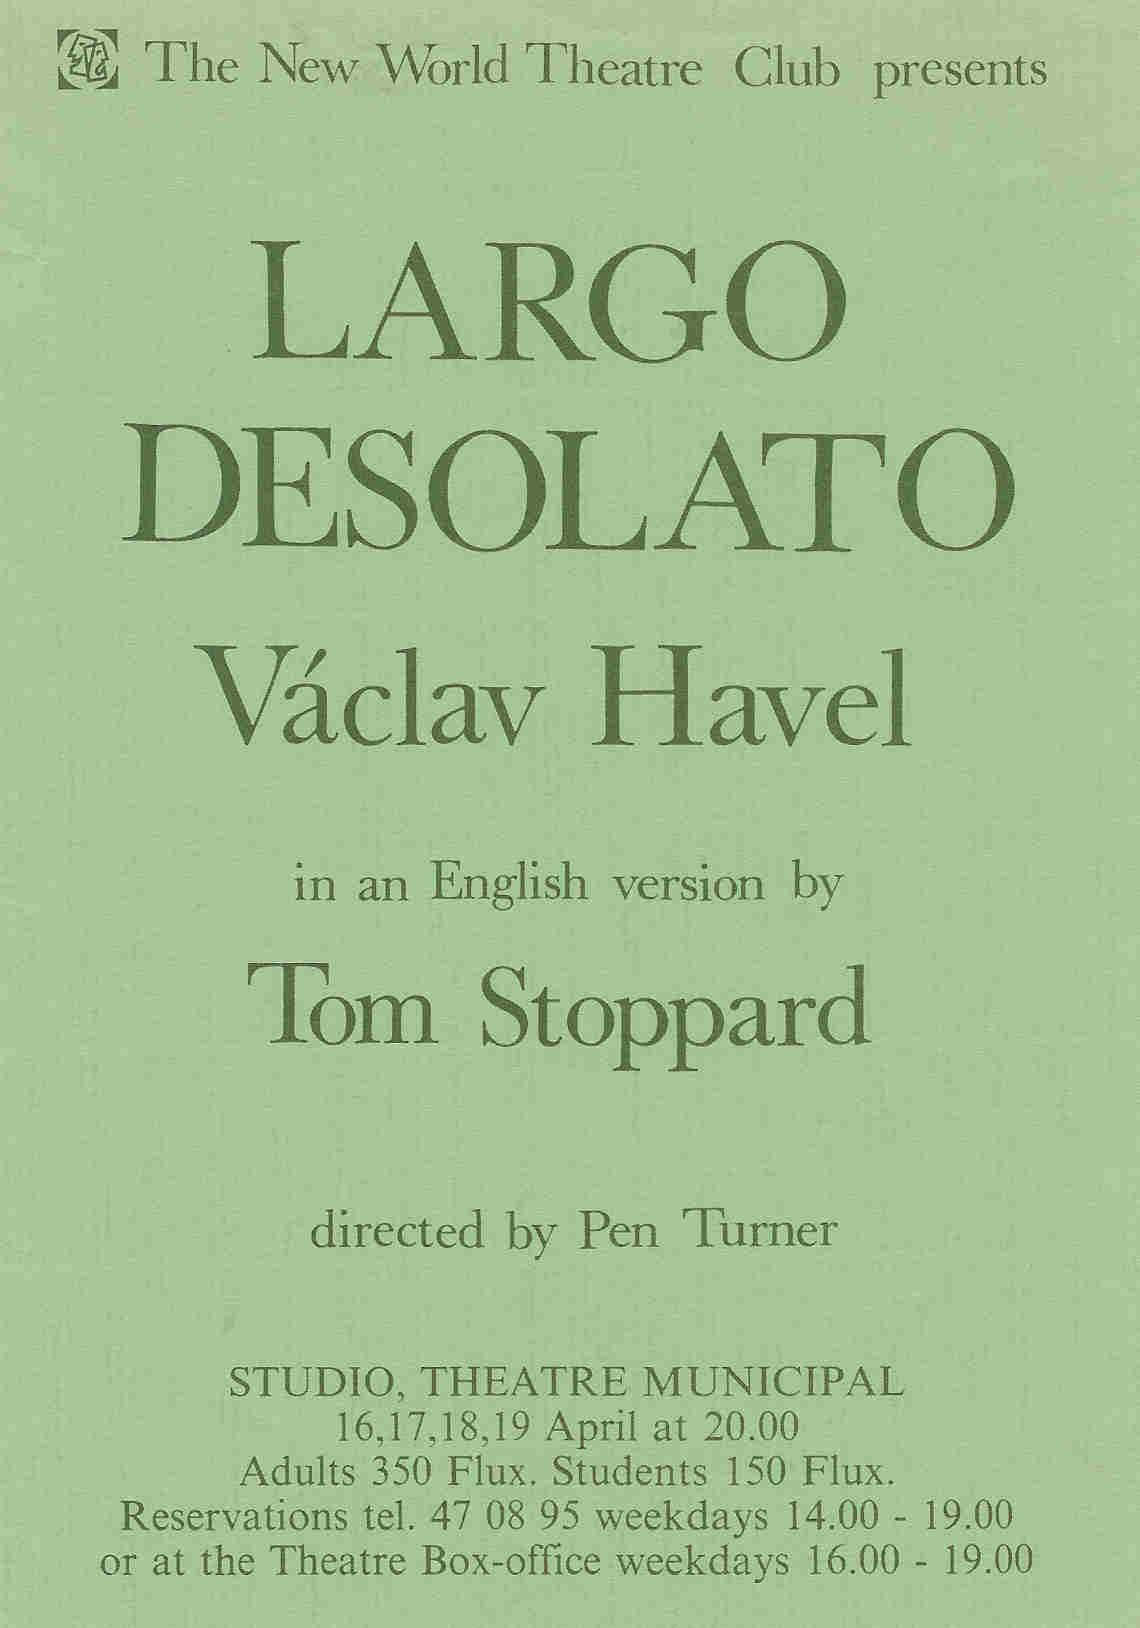 https://www.nwtc.lu/media/Show_Archives/1991_largo_desolato/LD91_flyer/LD91_flyer.jpg